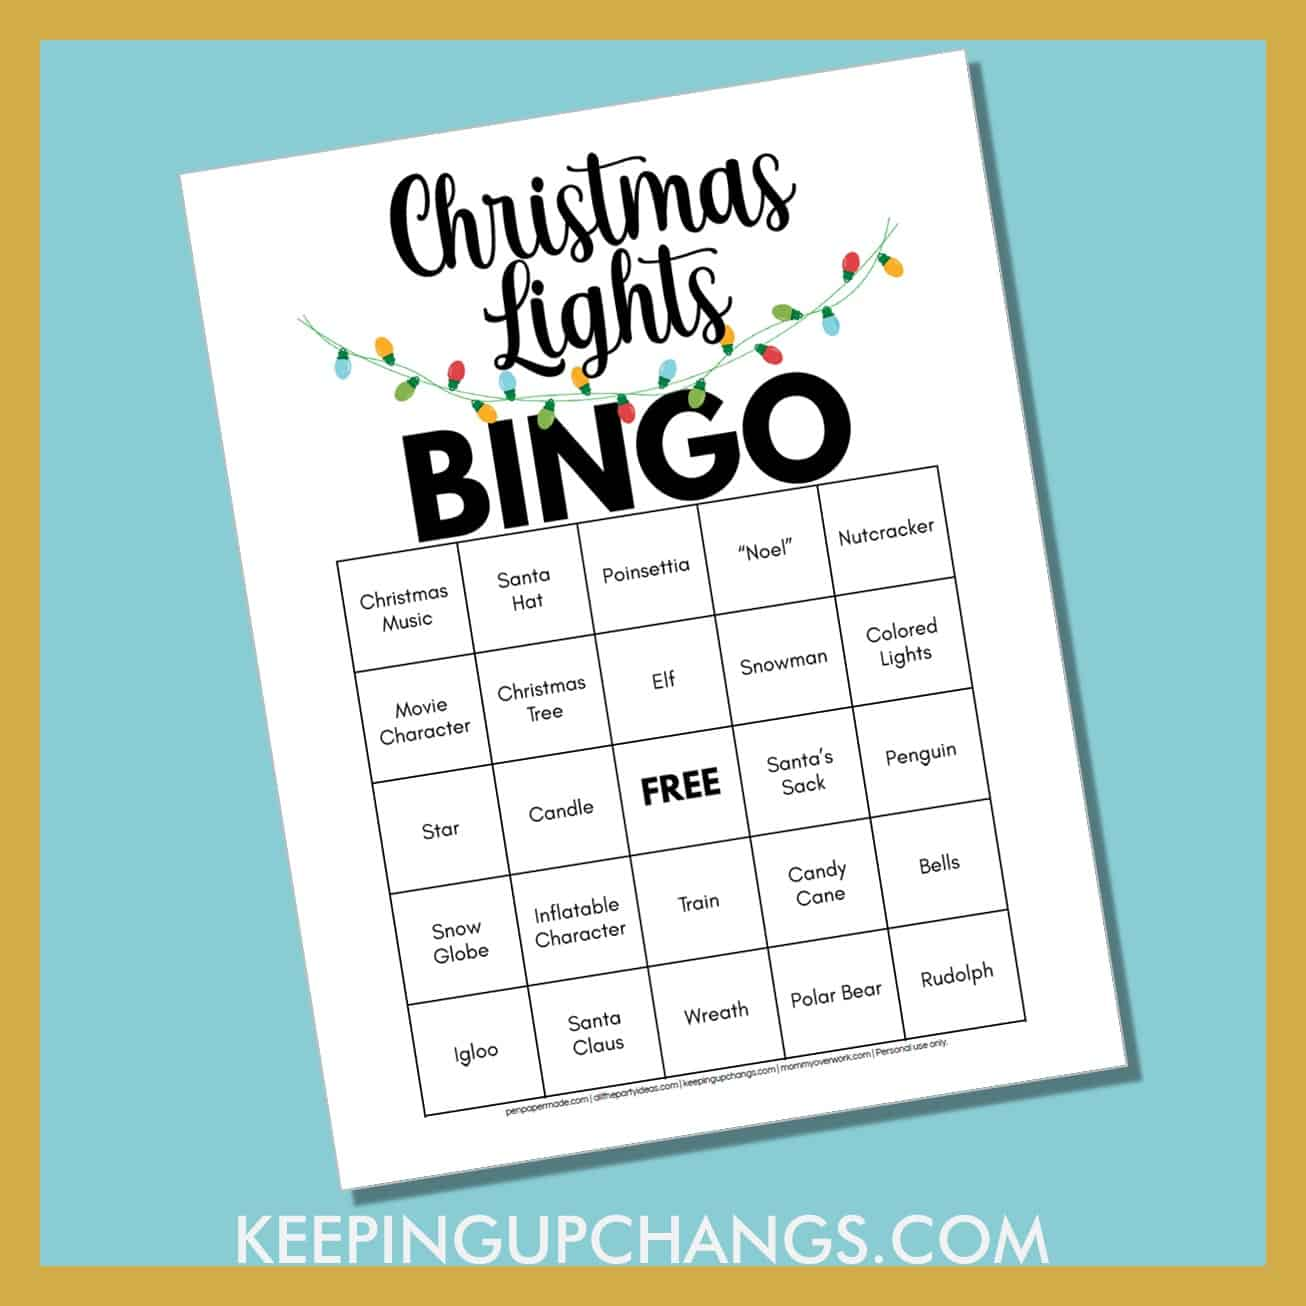 free christmas lights scavenger hunt bingo printable to look out for snowflakes, angels, toys, elves and more.